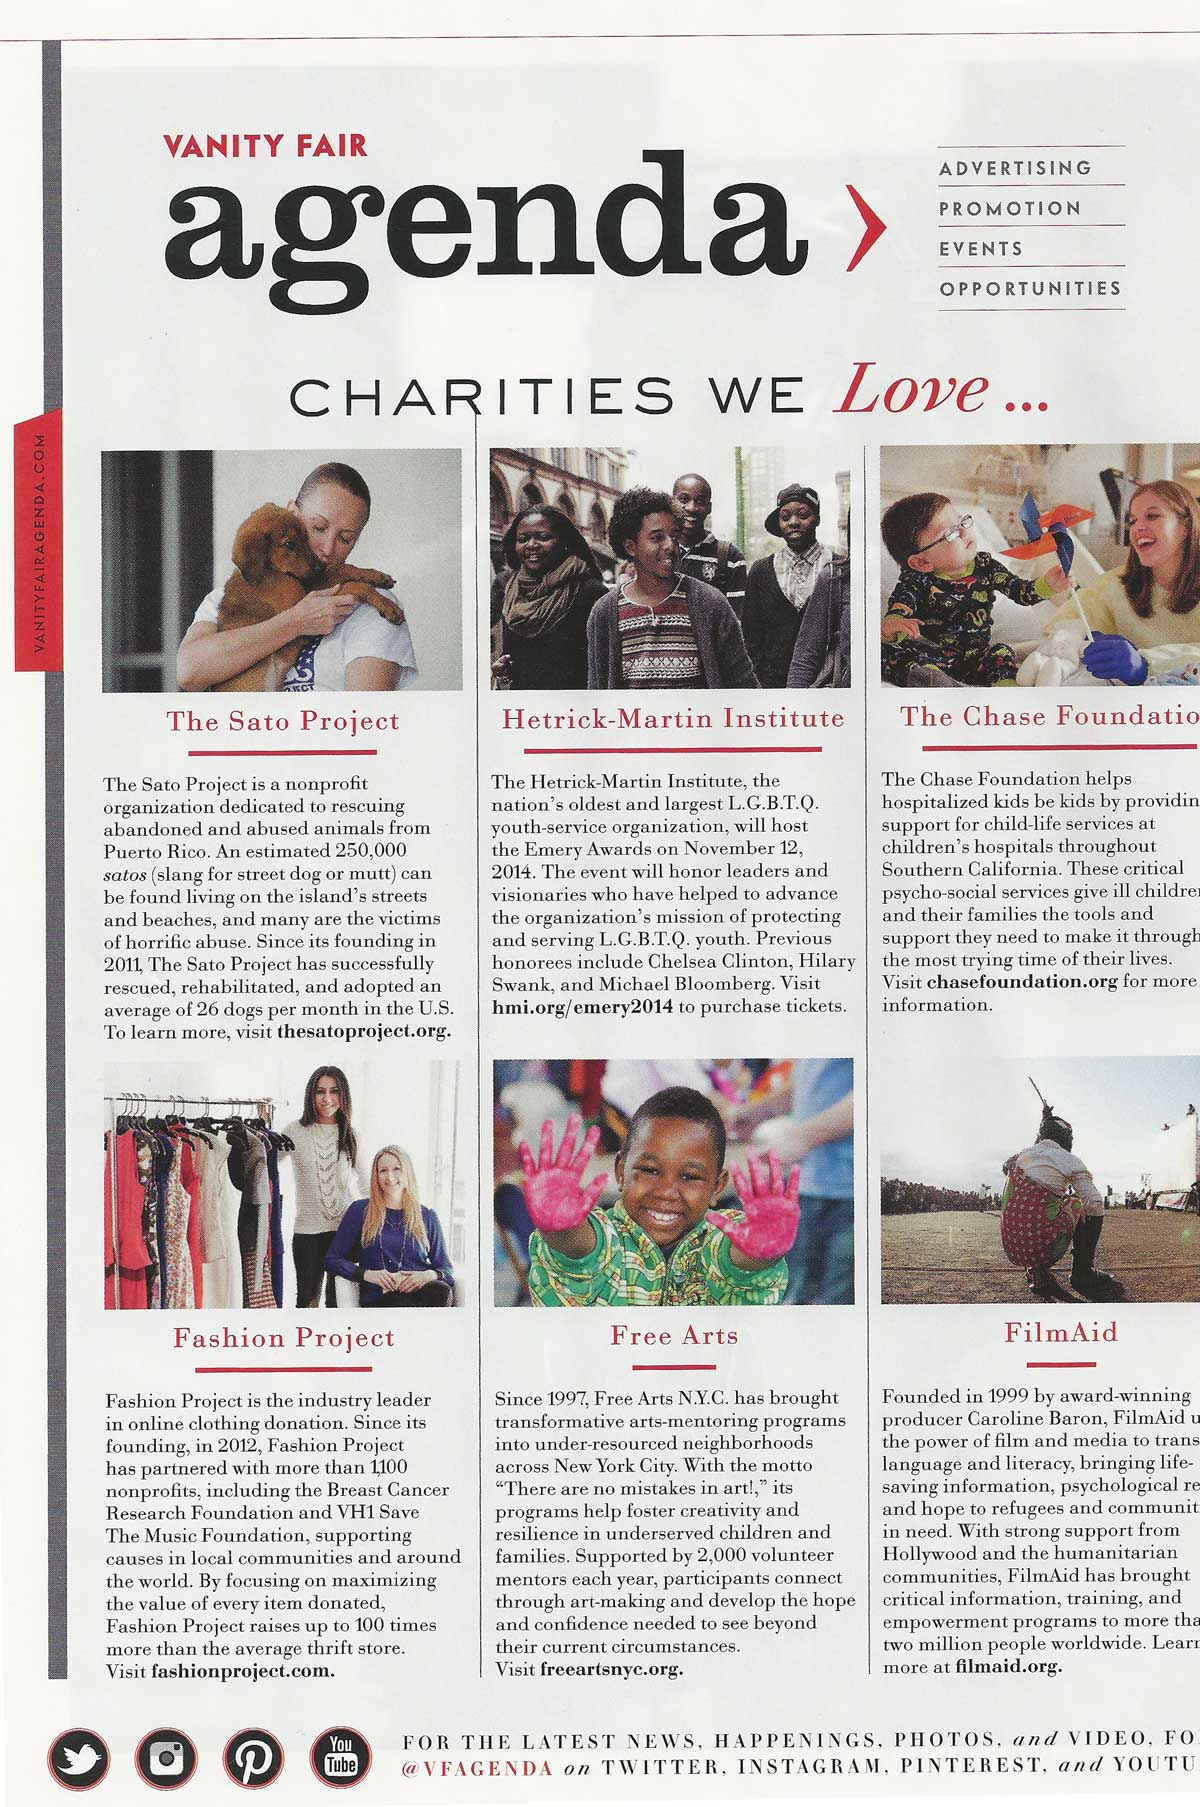 Vanity Fair Charities We Love